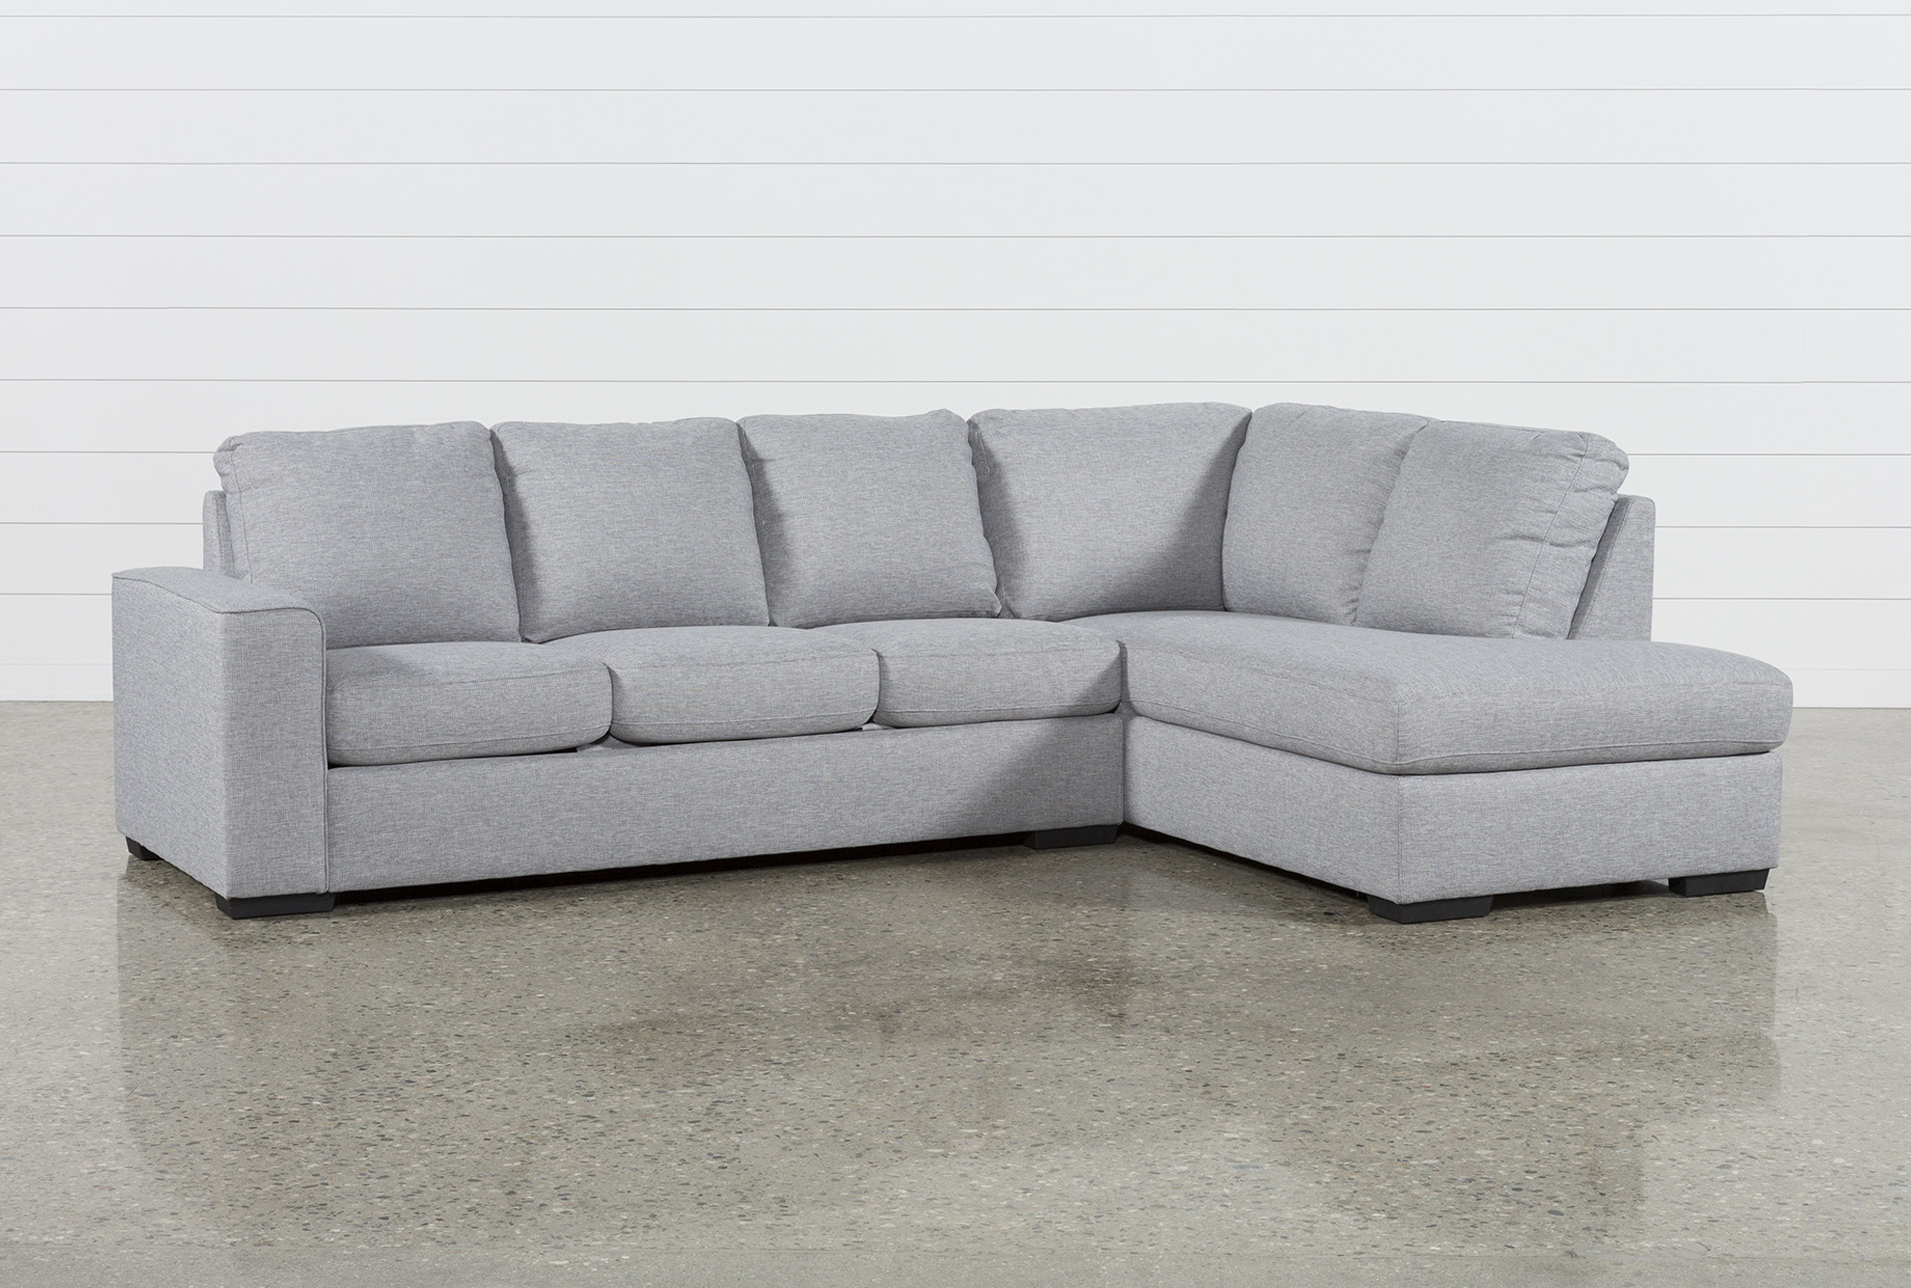 Arrowmask 2 Piece Sectionals With Laf Chaise Inside Most Recent Lucy Grey 2 Piece Sectional W/laf Chaise (Gallery 11 of 20)